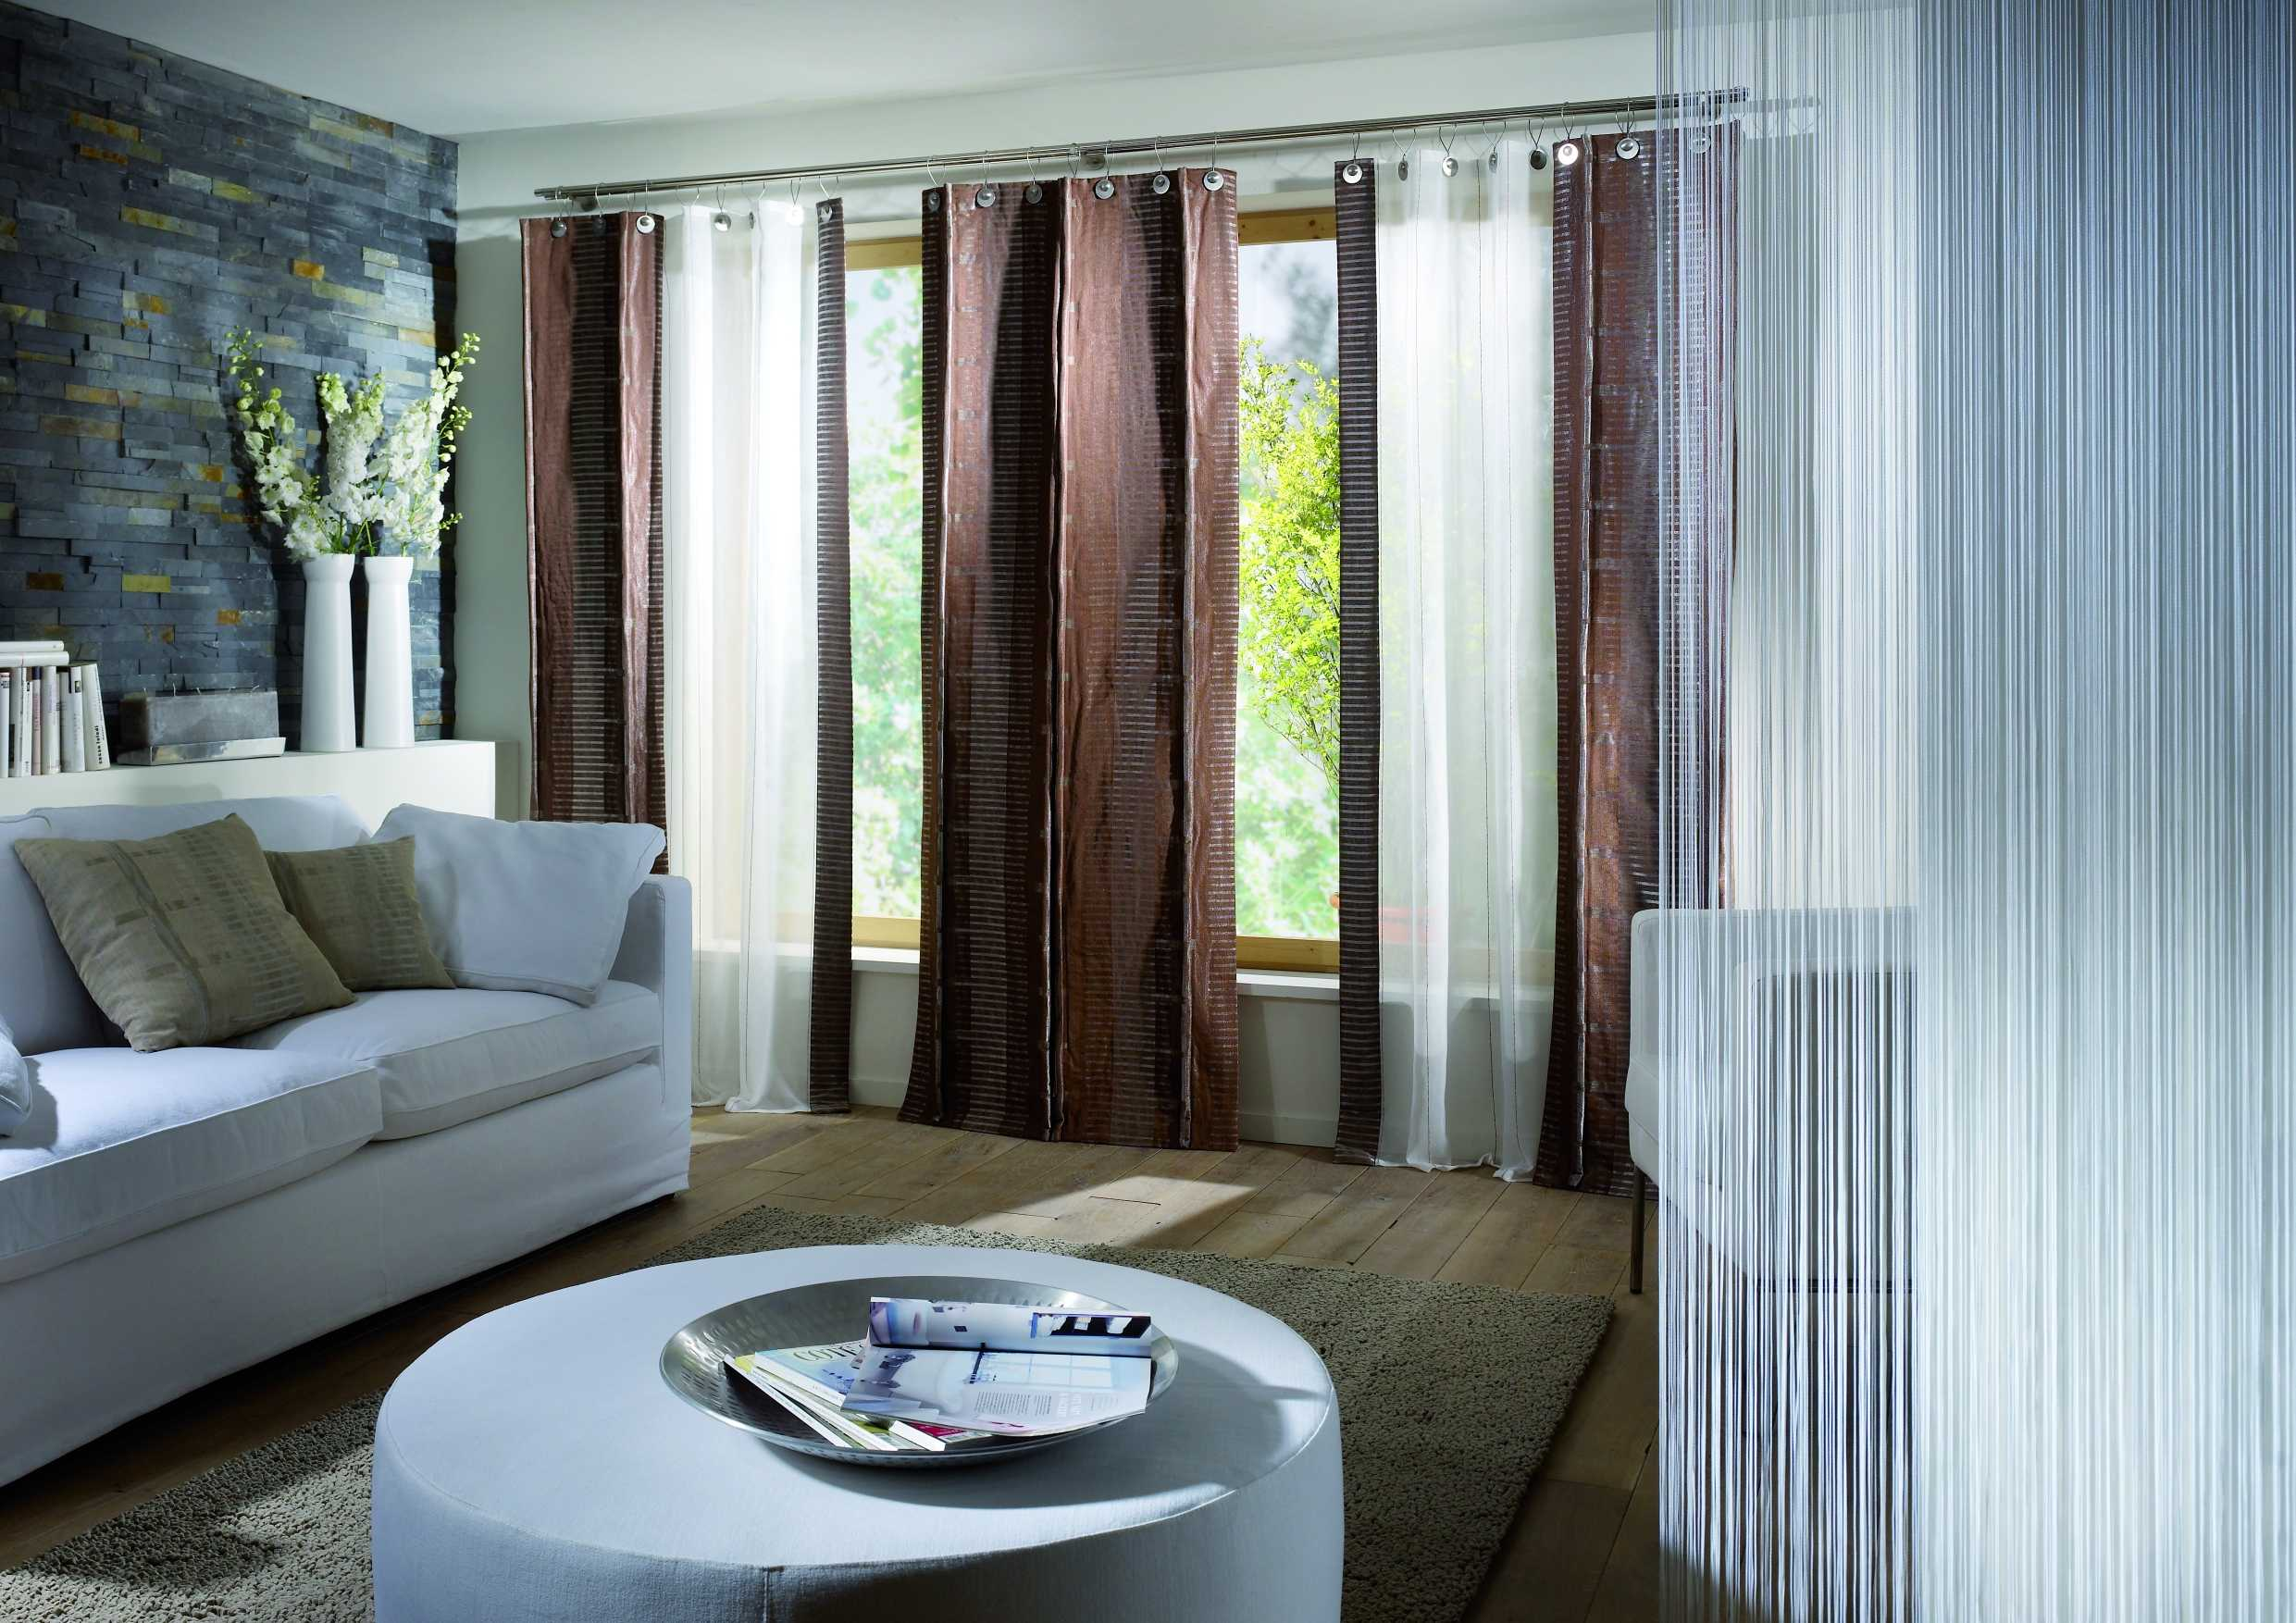 Marvellous Curtains For A Living Room Window (Image 9 of 10)